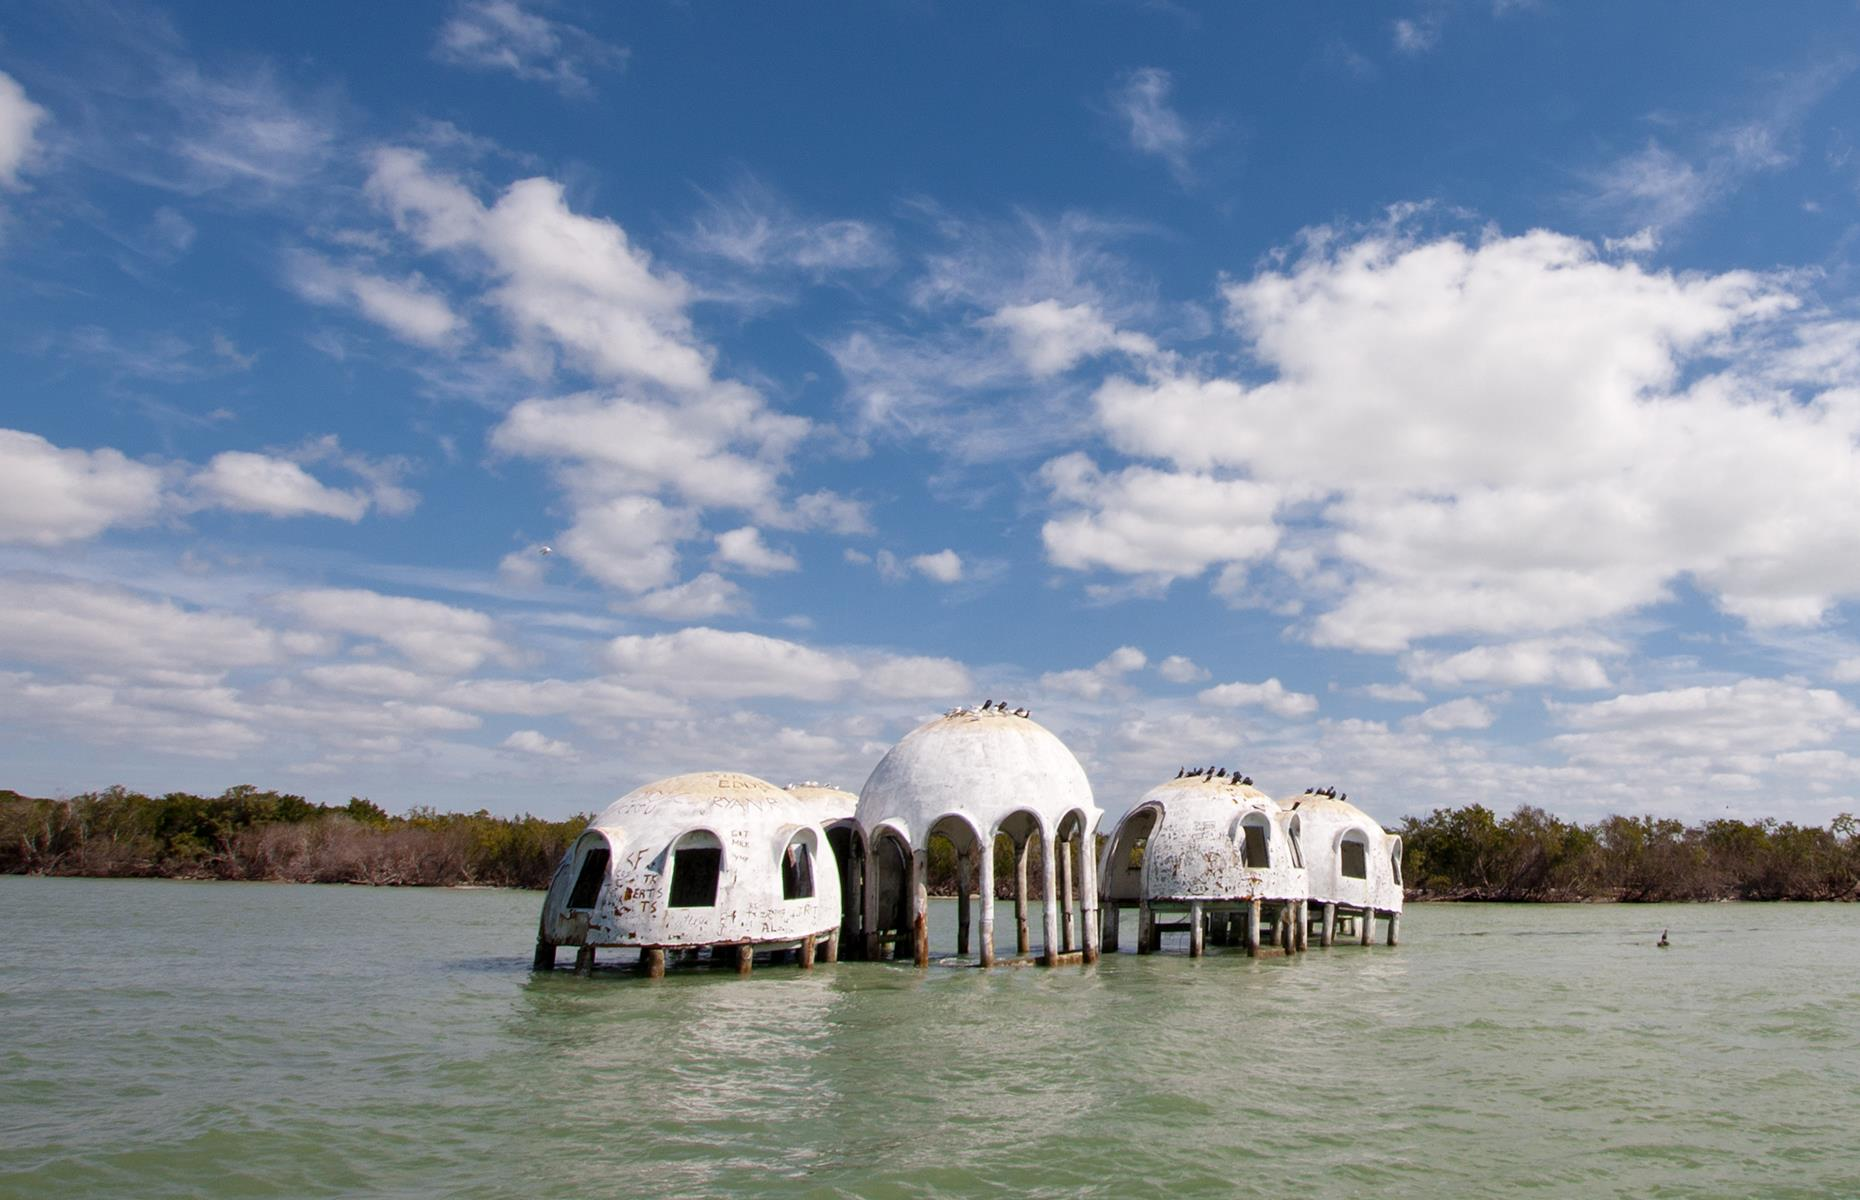 Slide 18 of 101: Looking like the handiwork of extra-terrestrials, this strange dome home was built in the early 1980s on a beach near Cape Romano by retired oil producer Bob Lee. However, Lee was forced to abandon the property in 1992 after Hurricane Andrew rendered it uninhabitable.